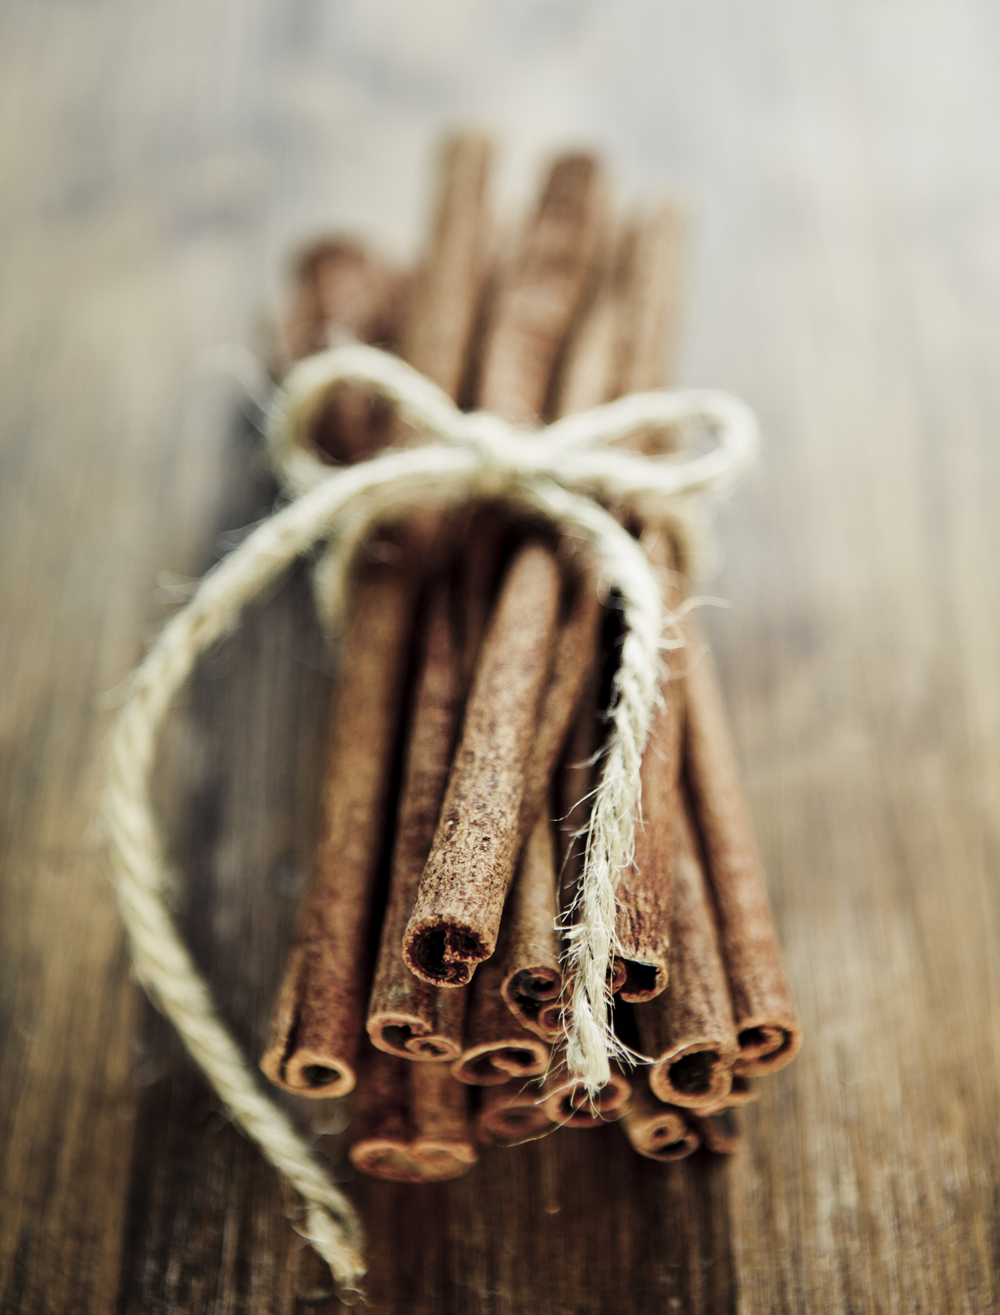 Sprinkle in some ground cinnamon and add some sticks of almond for garnish.